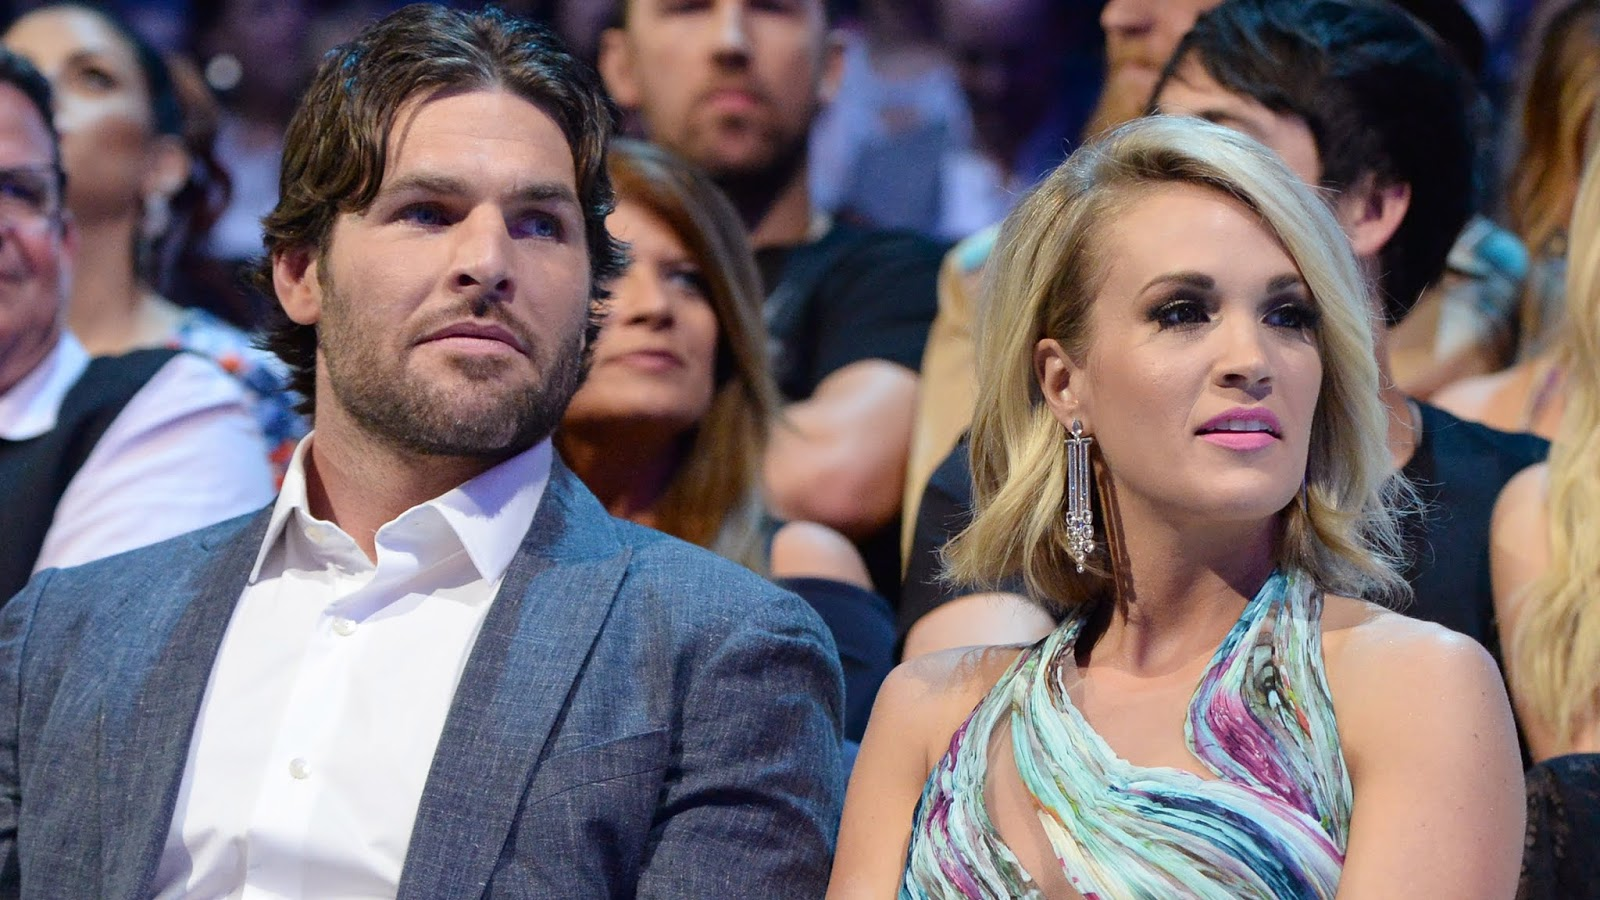 who is dating mike fisher